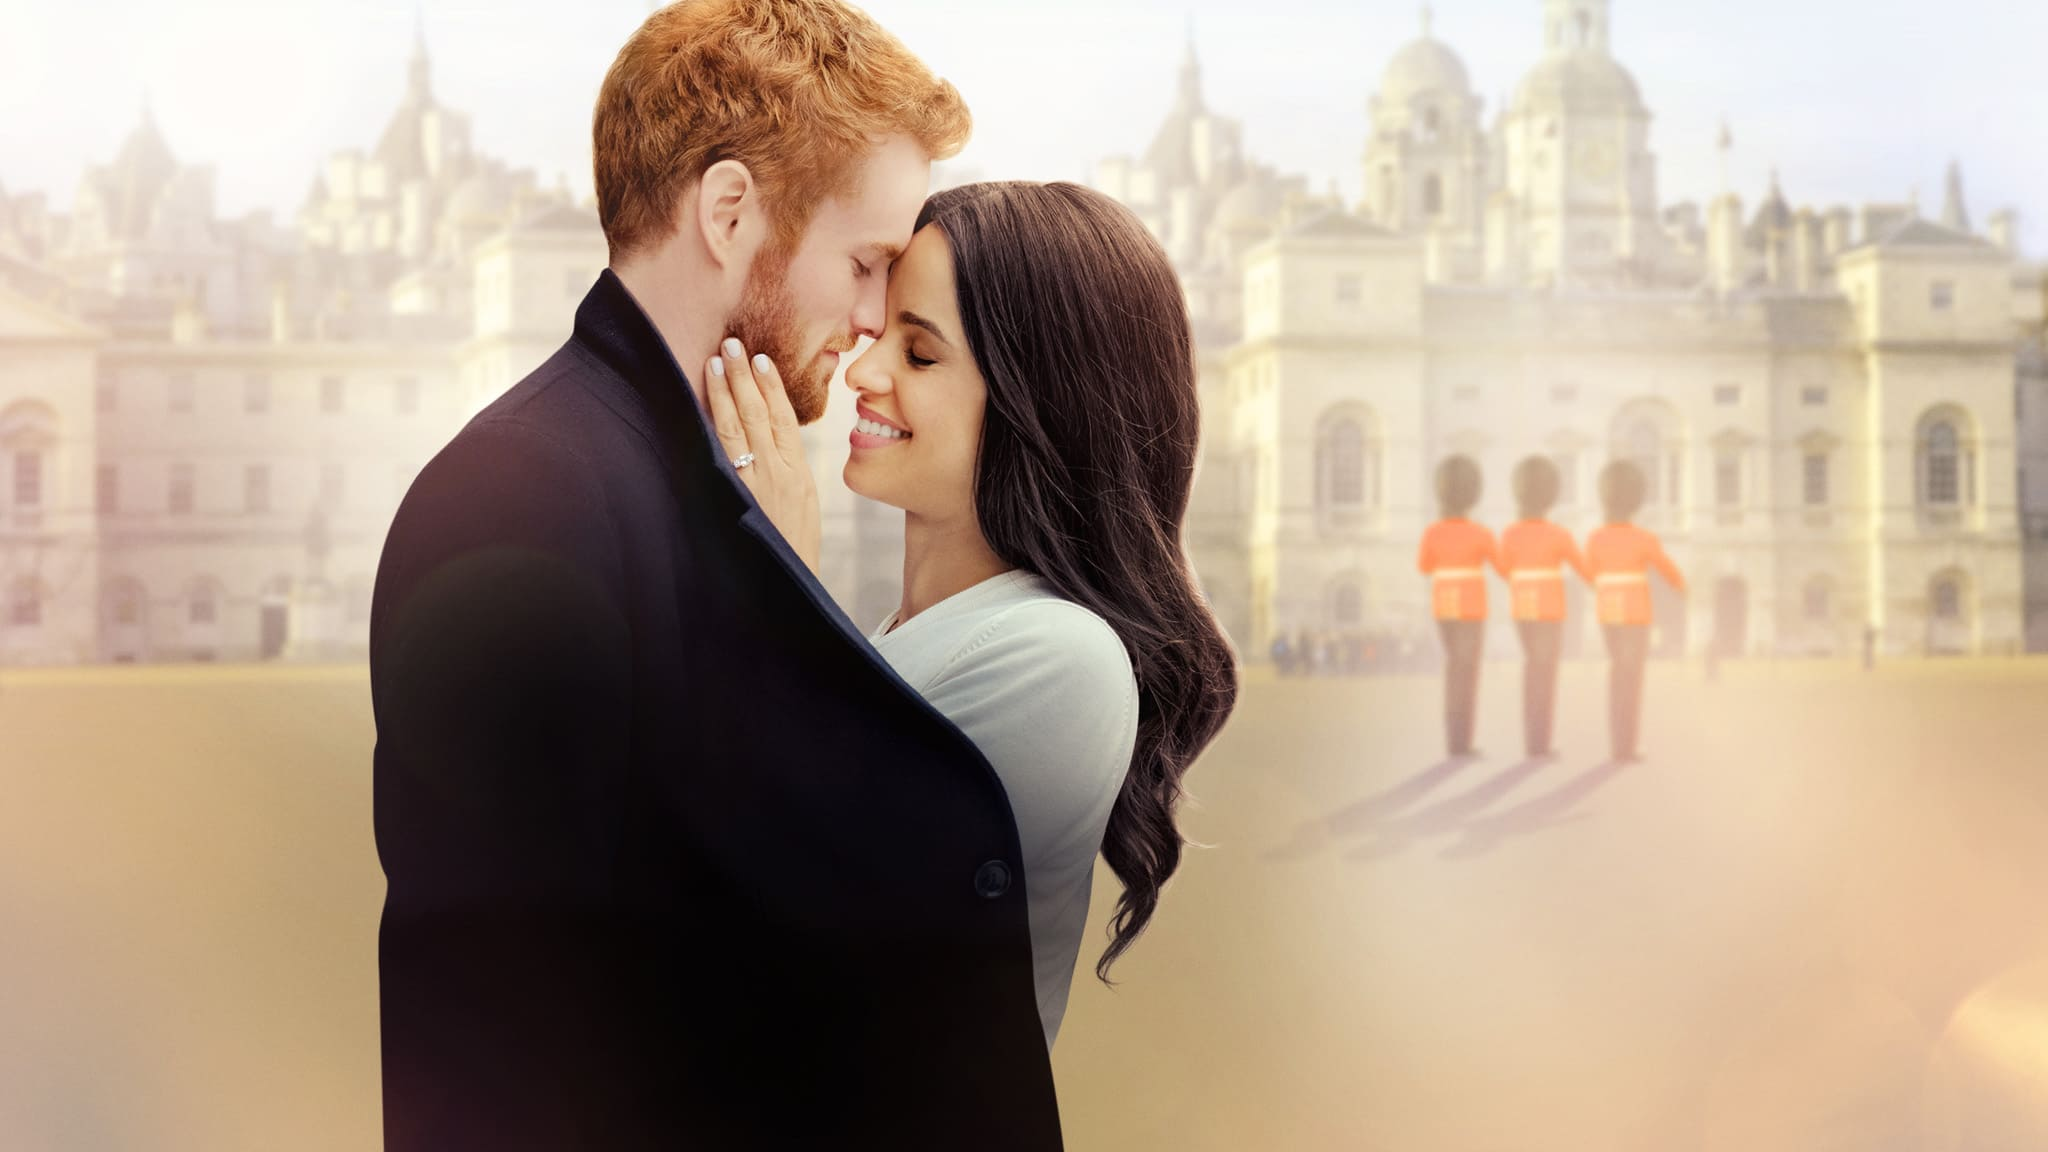 Film quand harry rencontre meghan